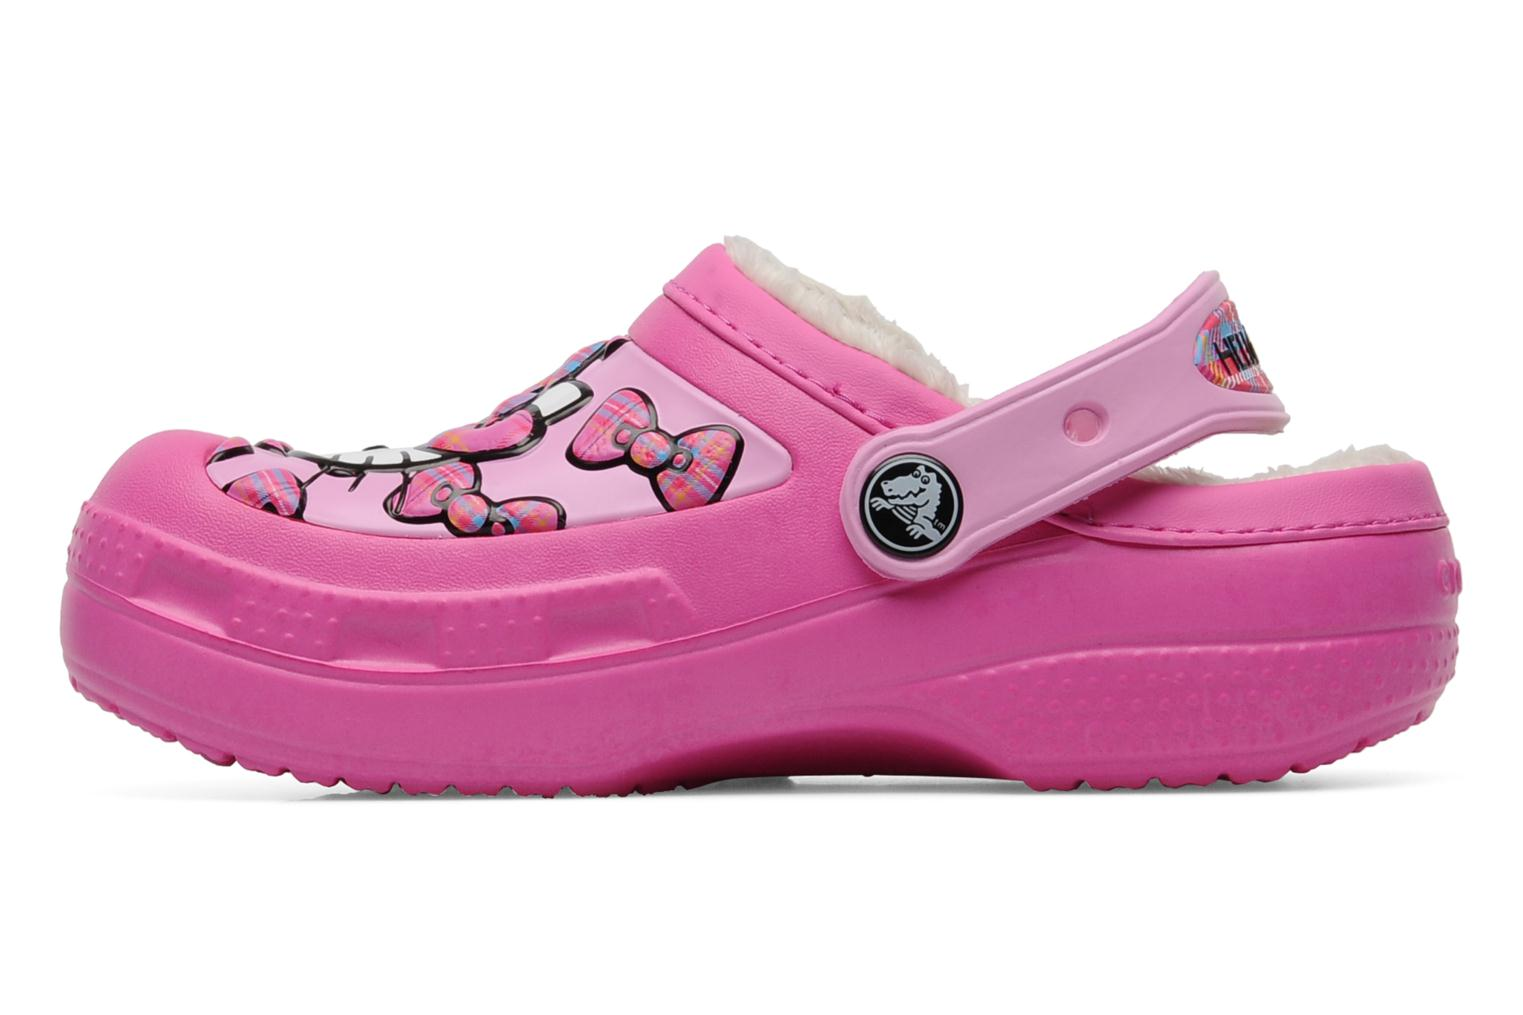 Creative Crocs Hello Kitty Bow Lined Clog Magenta